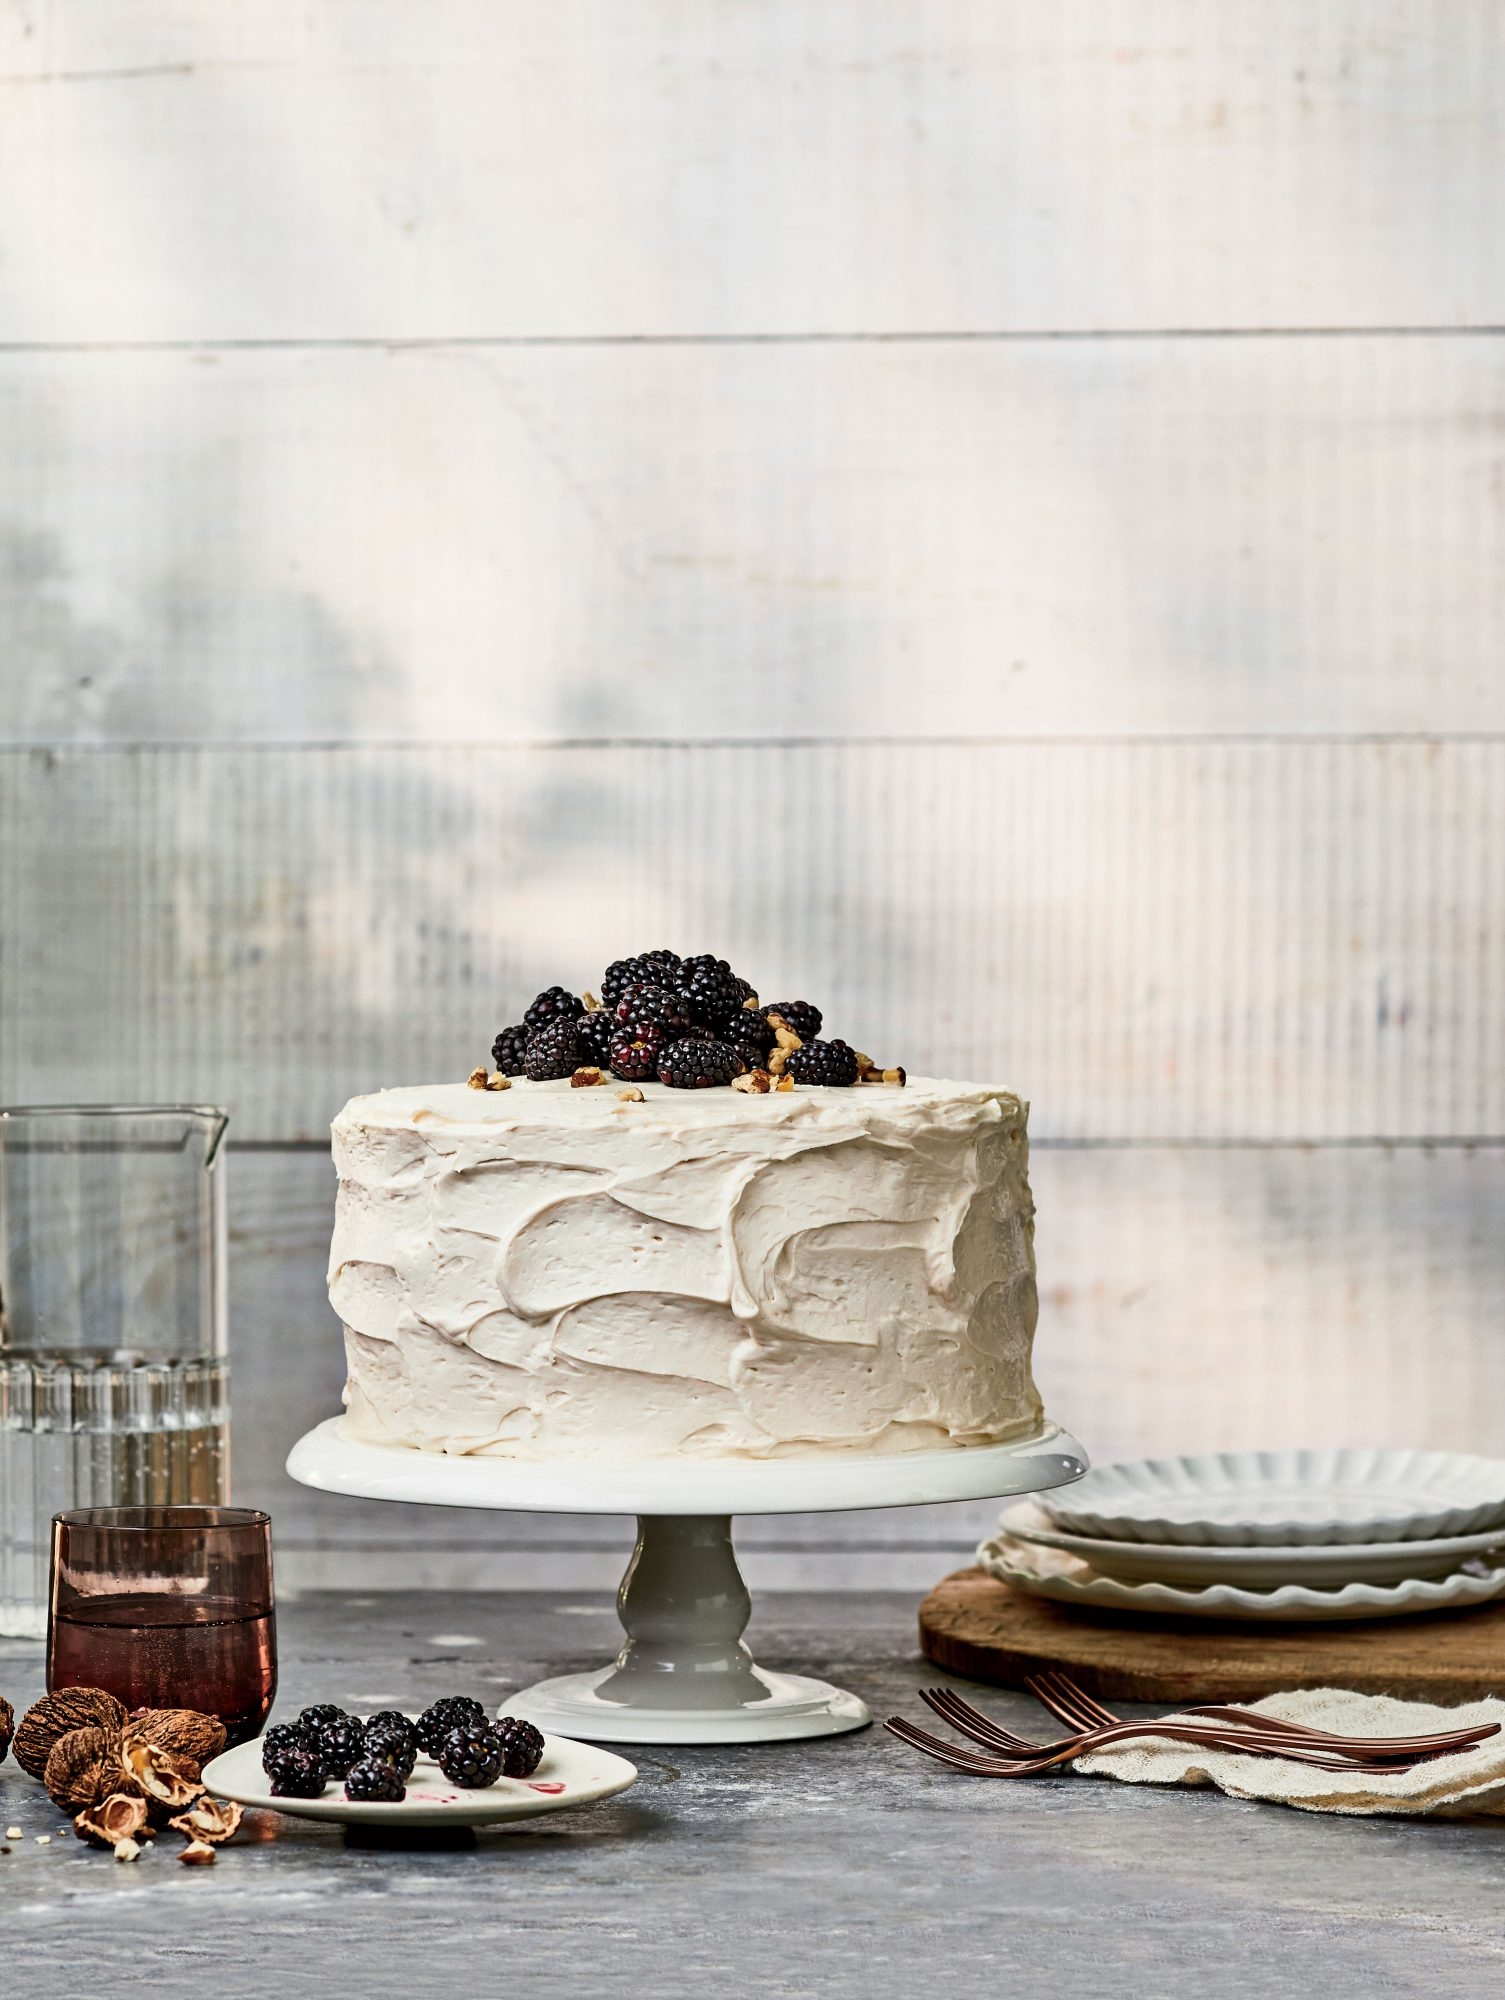 Why This Old-Fashioned Kentucky Jam Cake Reminds Me of Home